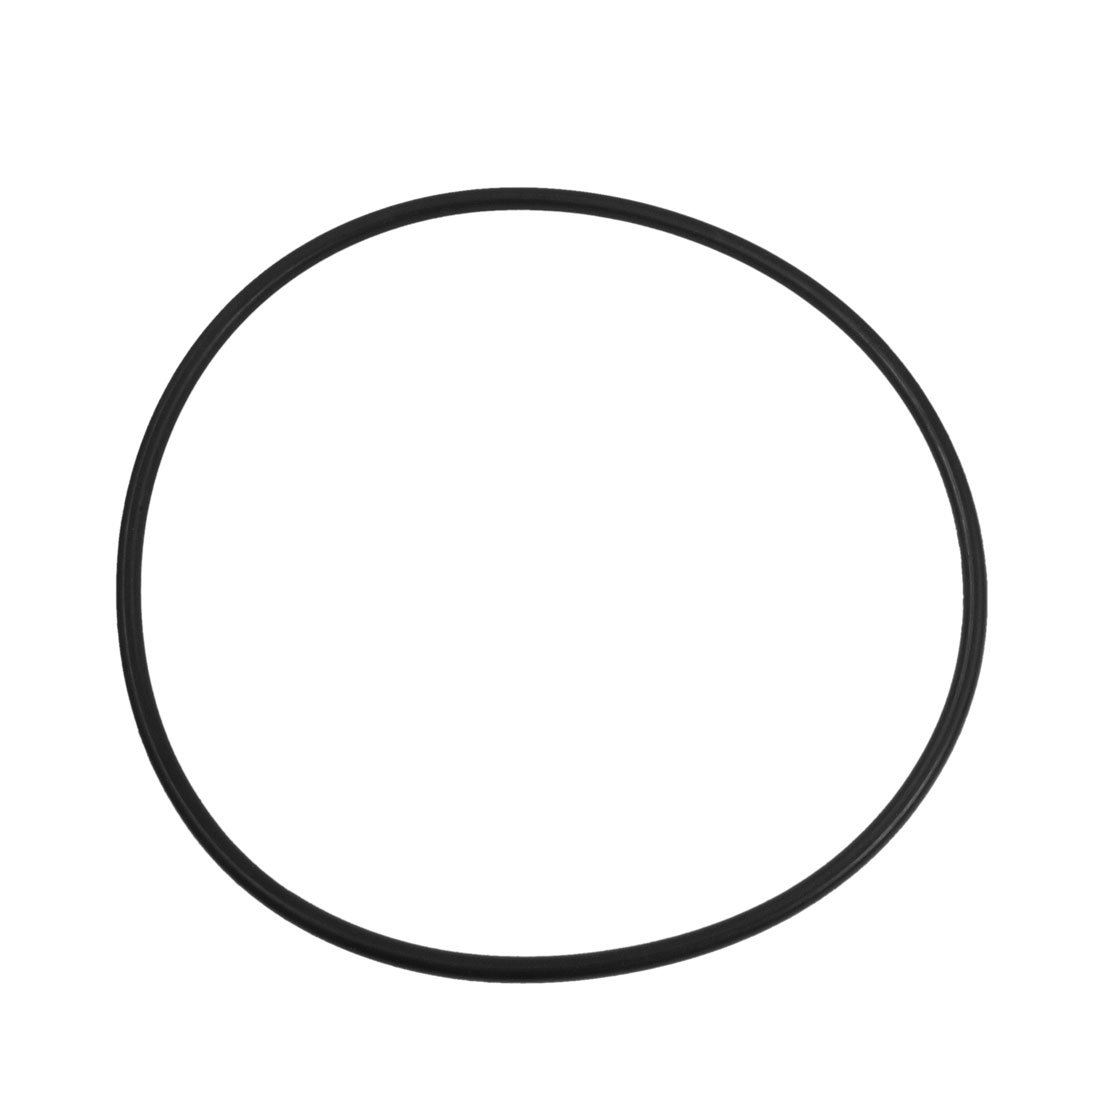 uxcell 160mm x 5mm Industrial Flexible Rubber O Ring Seal Washer ...